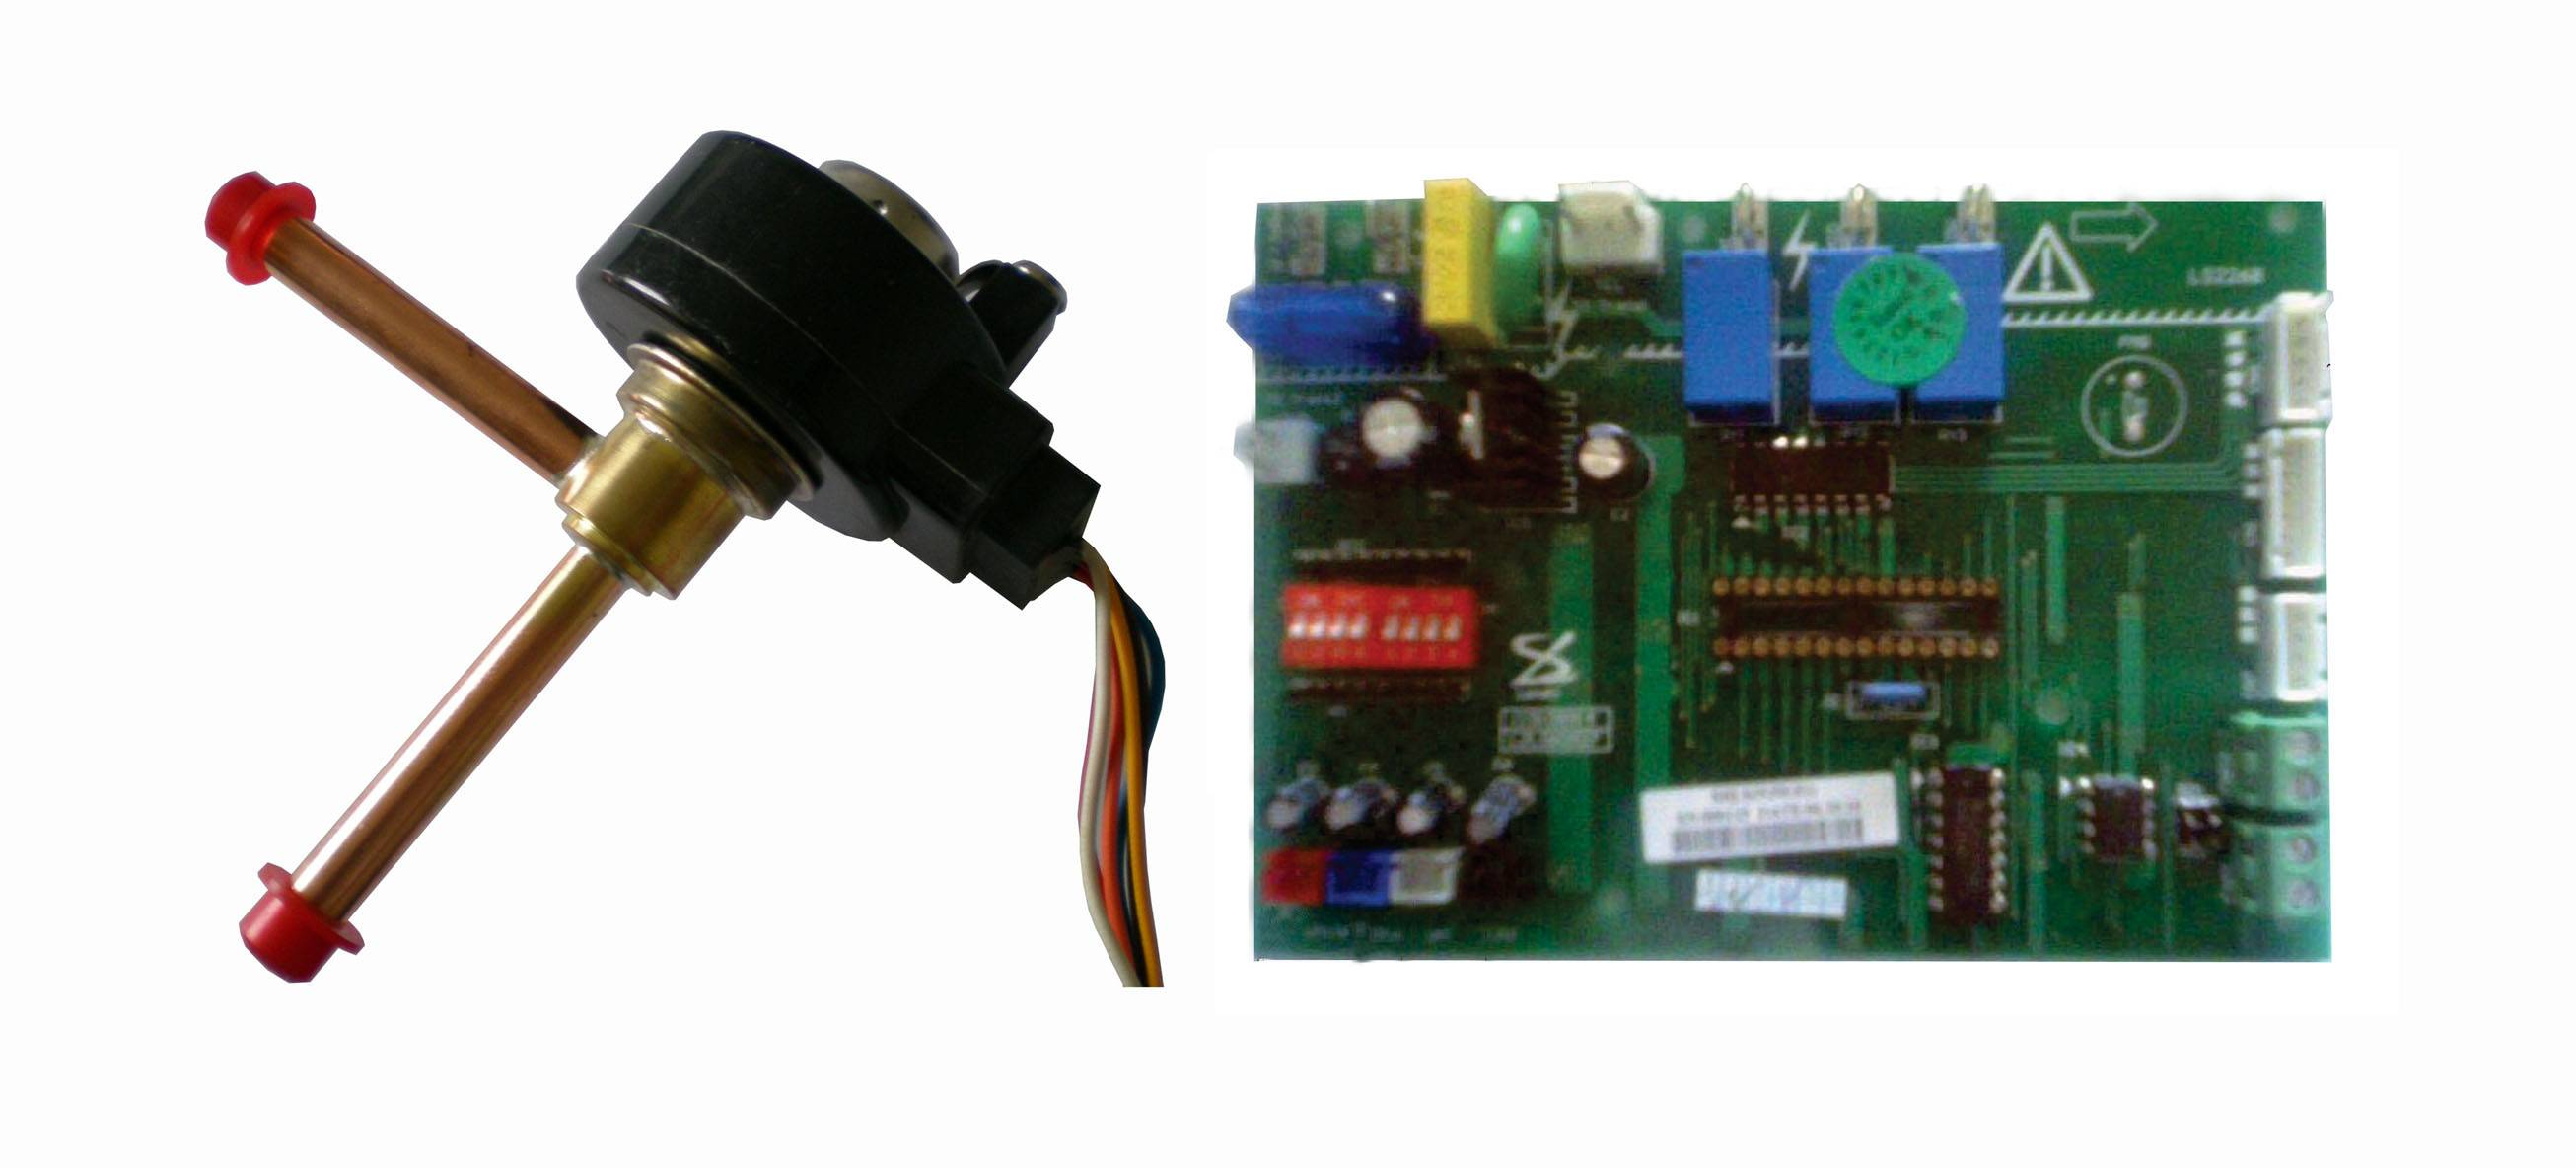 inverter air conditionings systems accessories,Electronic expansion valves,PCB,expansion vlaves